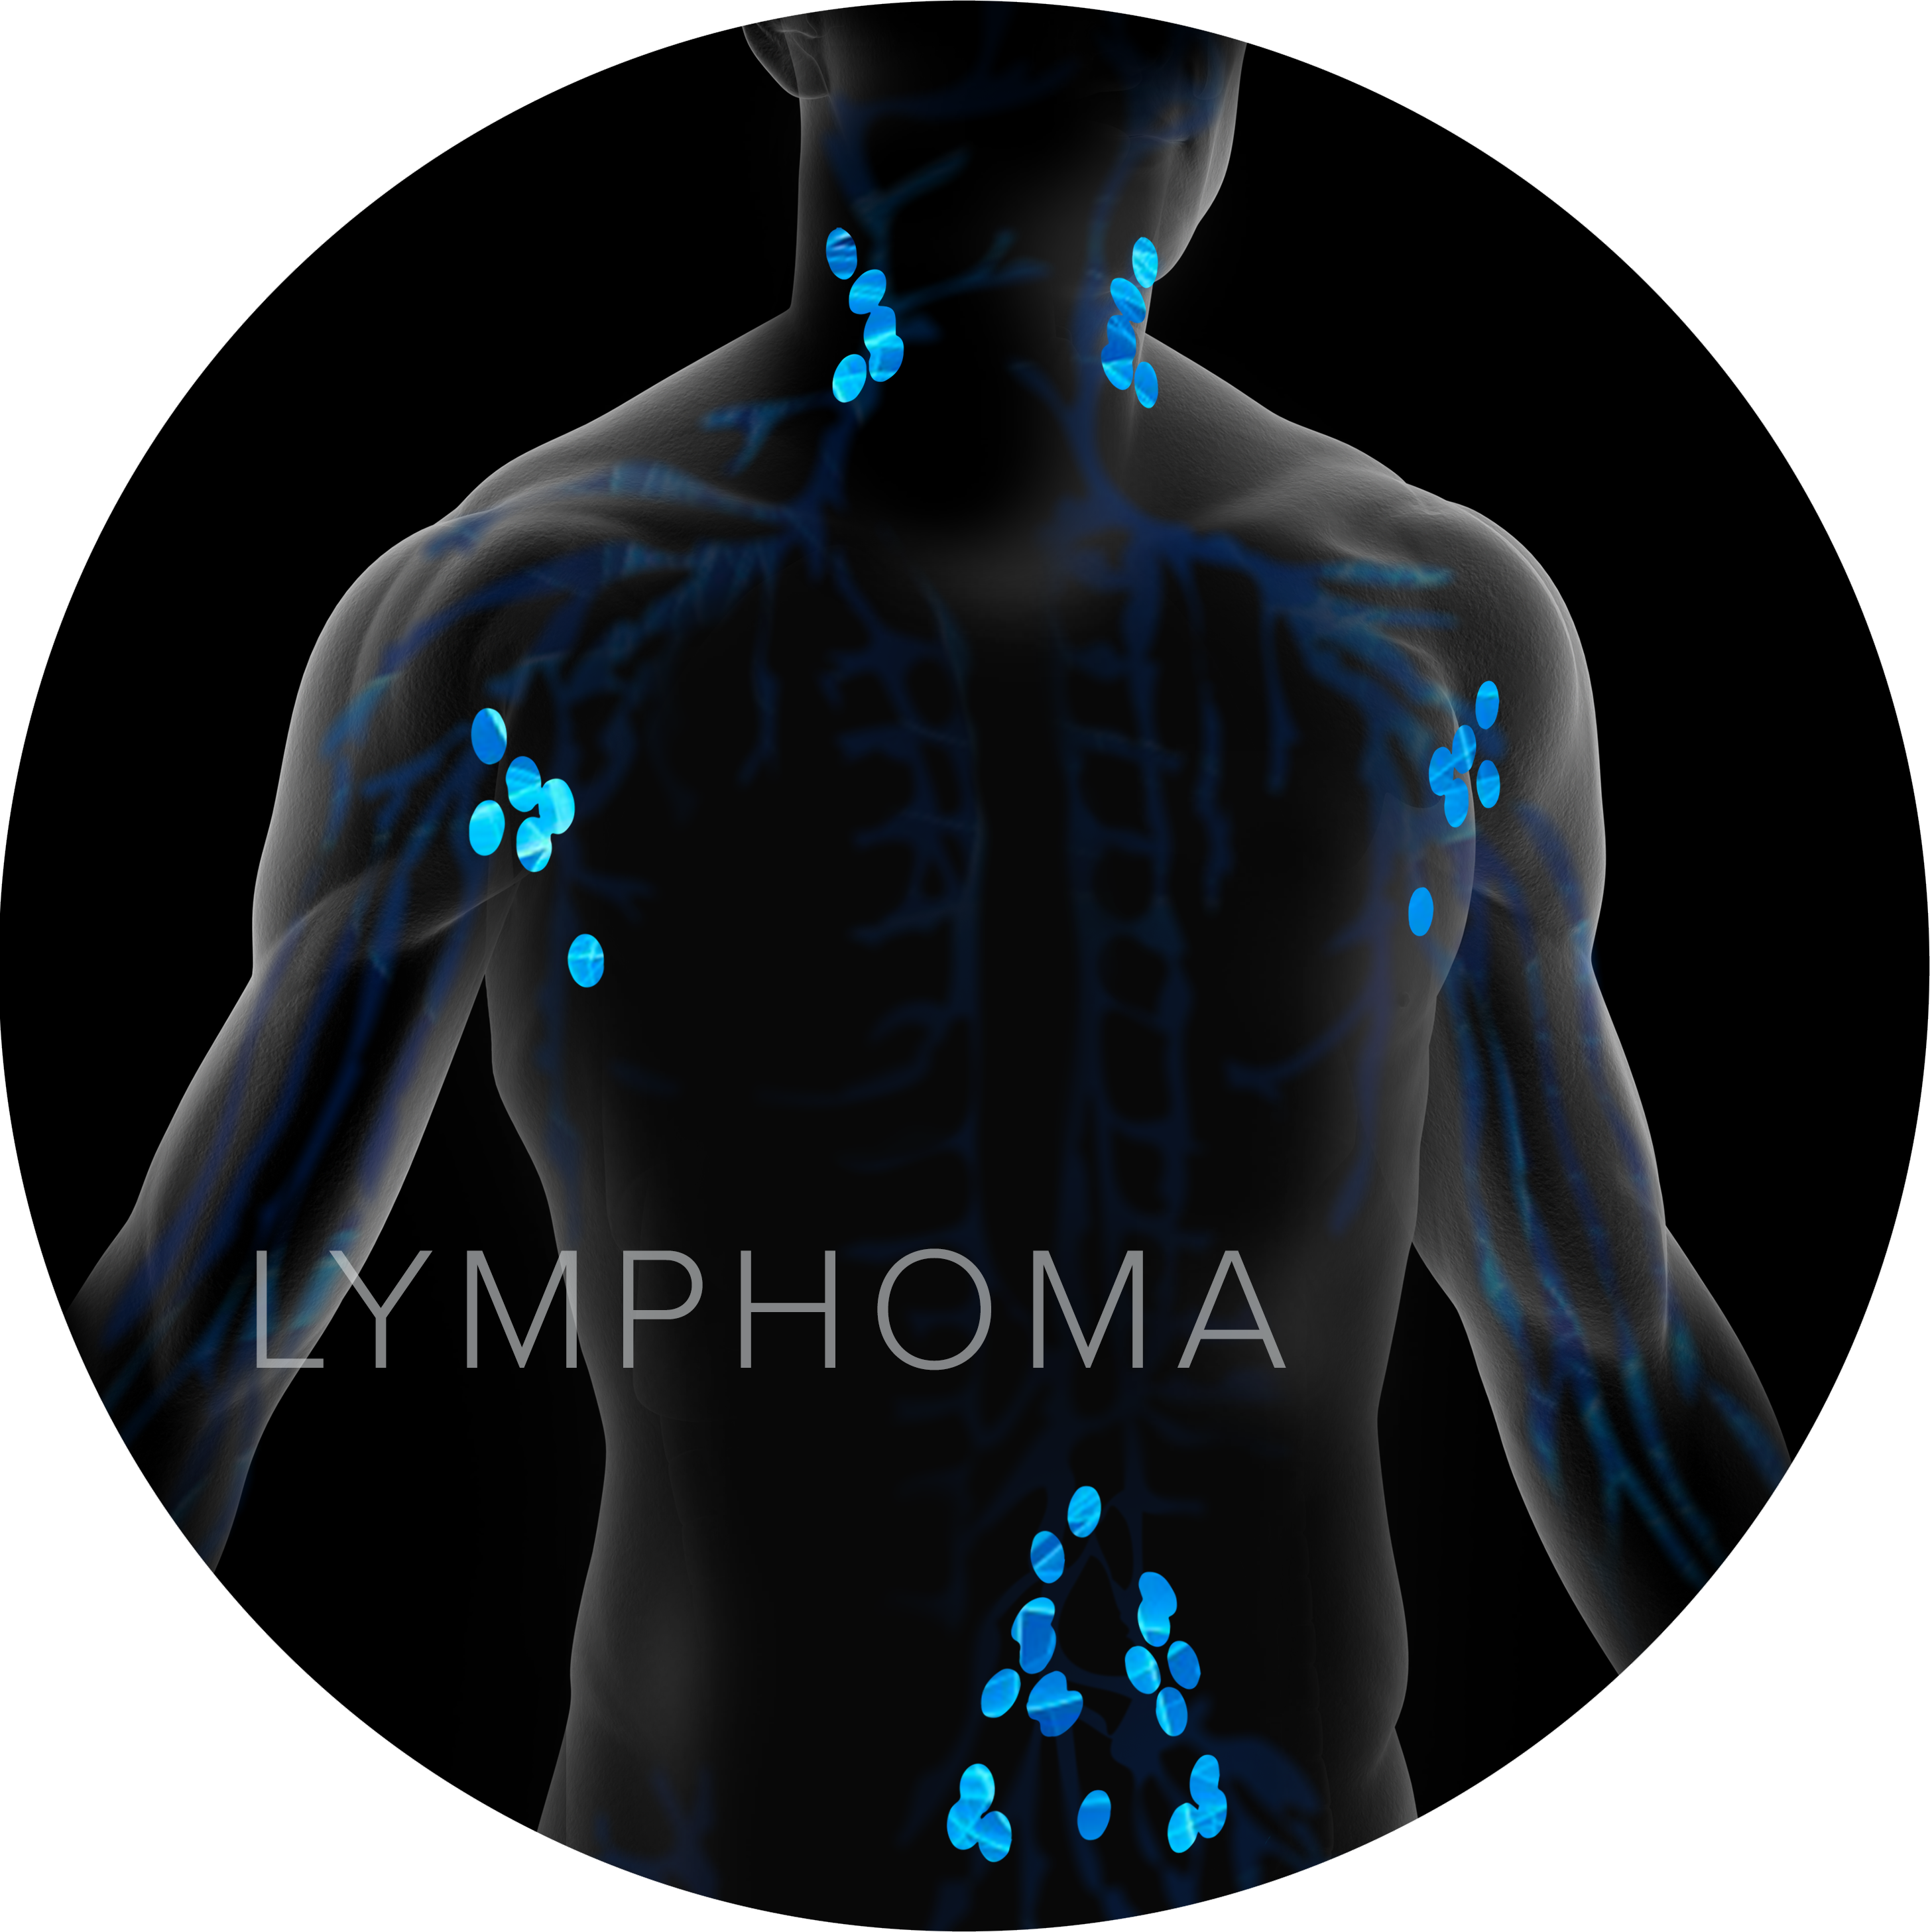 lymphoma graphic